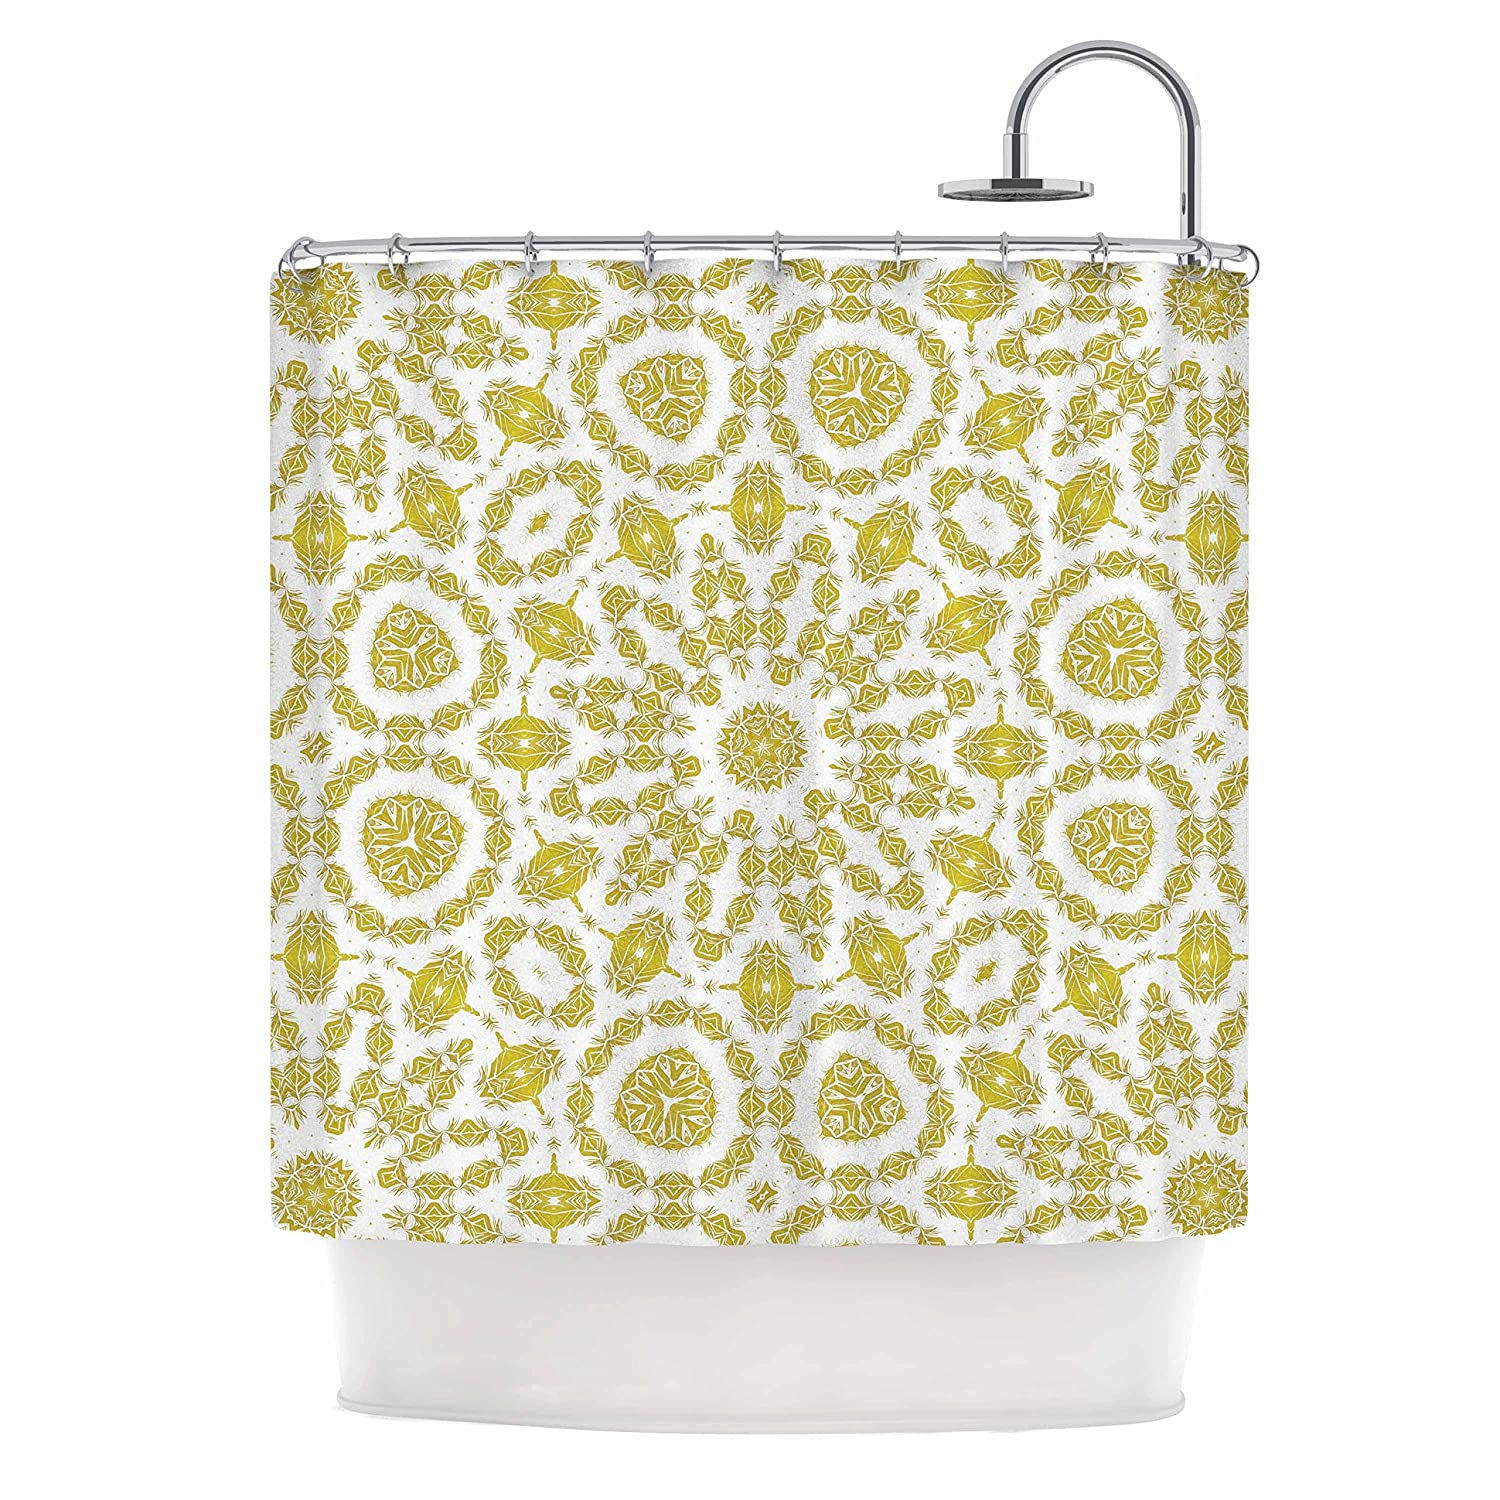 69 x 70 Shower Curtain Kess InHouse Alison Coxon Flaxen Mandala White Yellow Digital